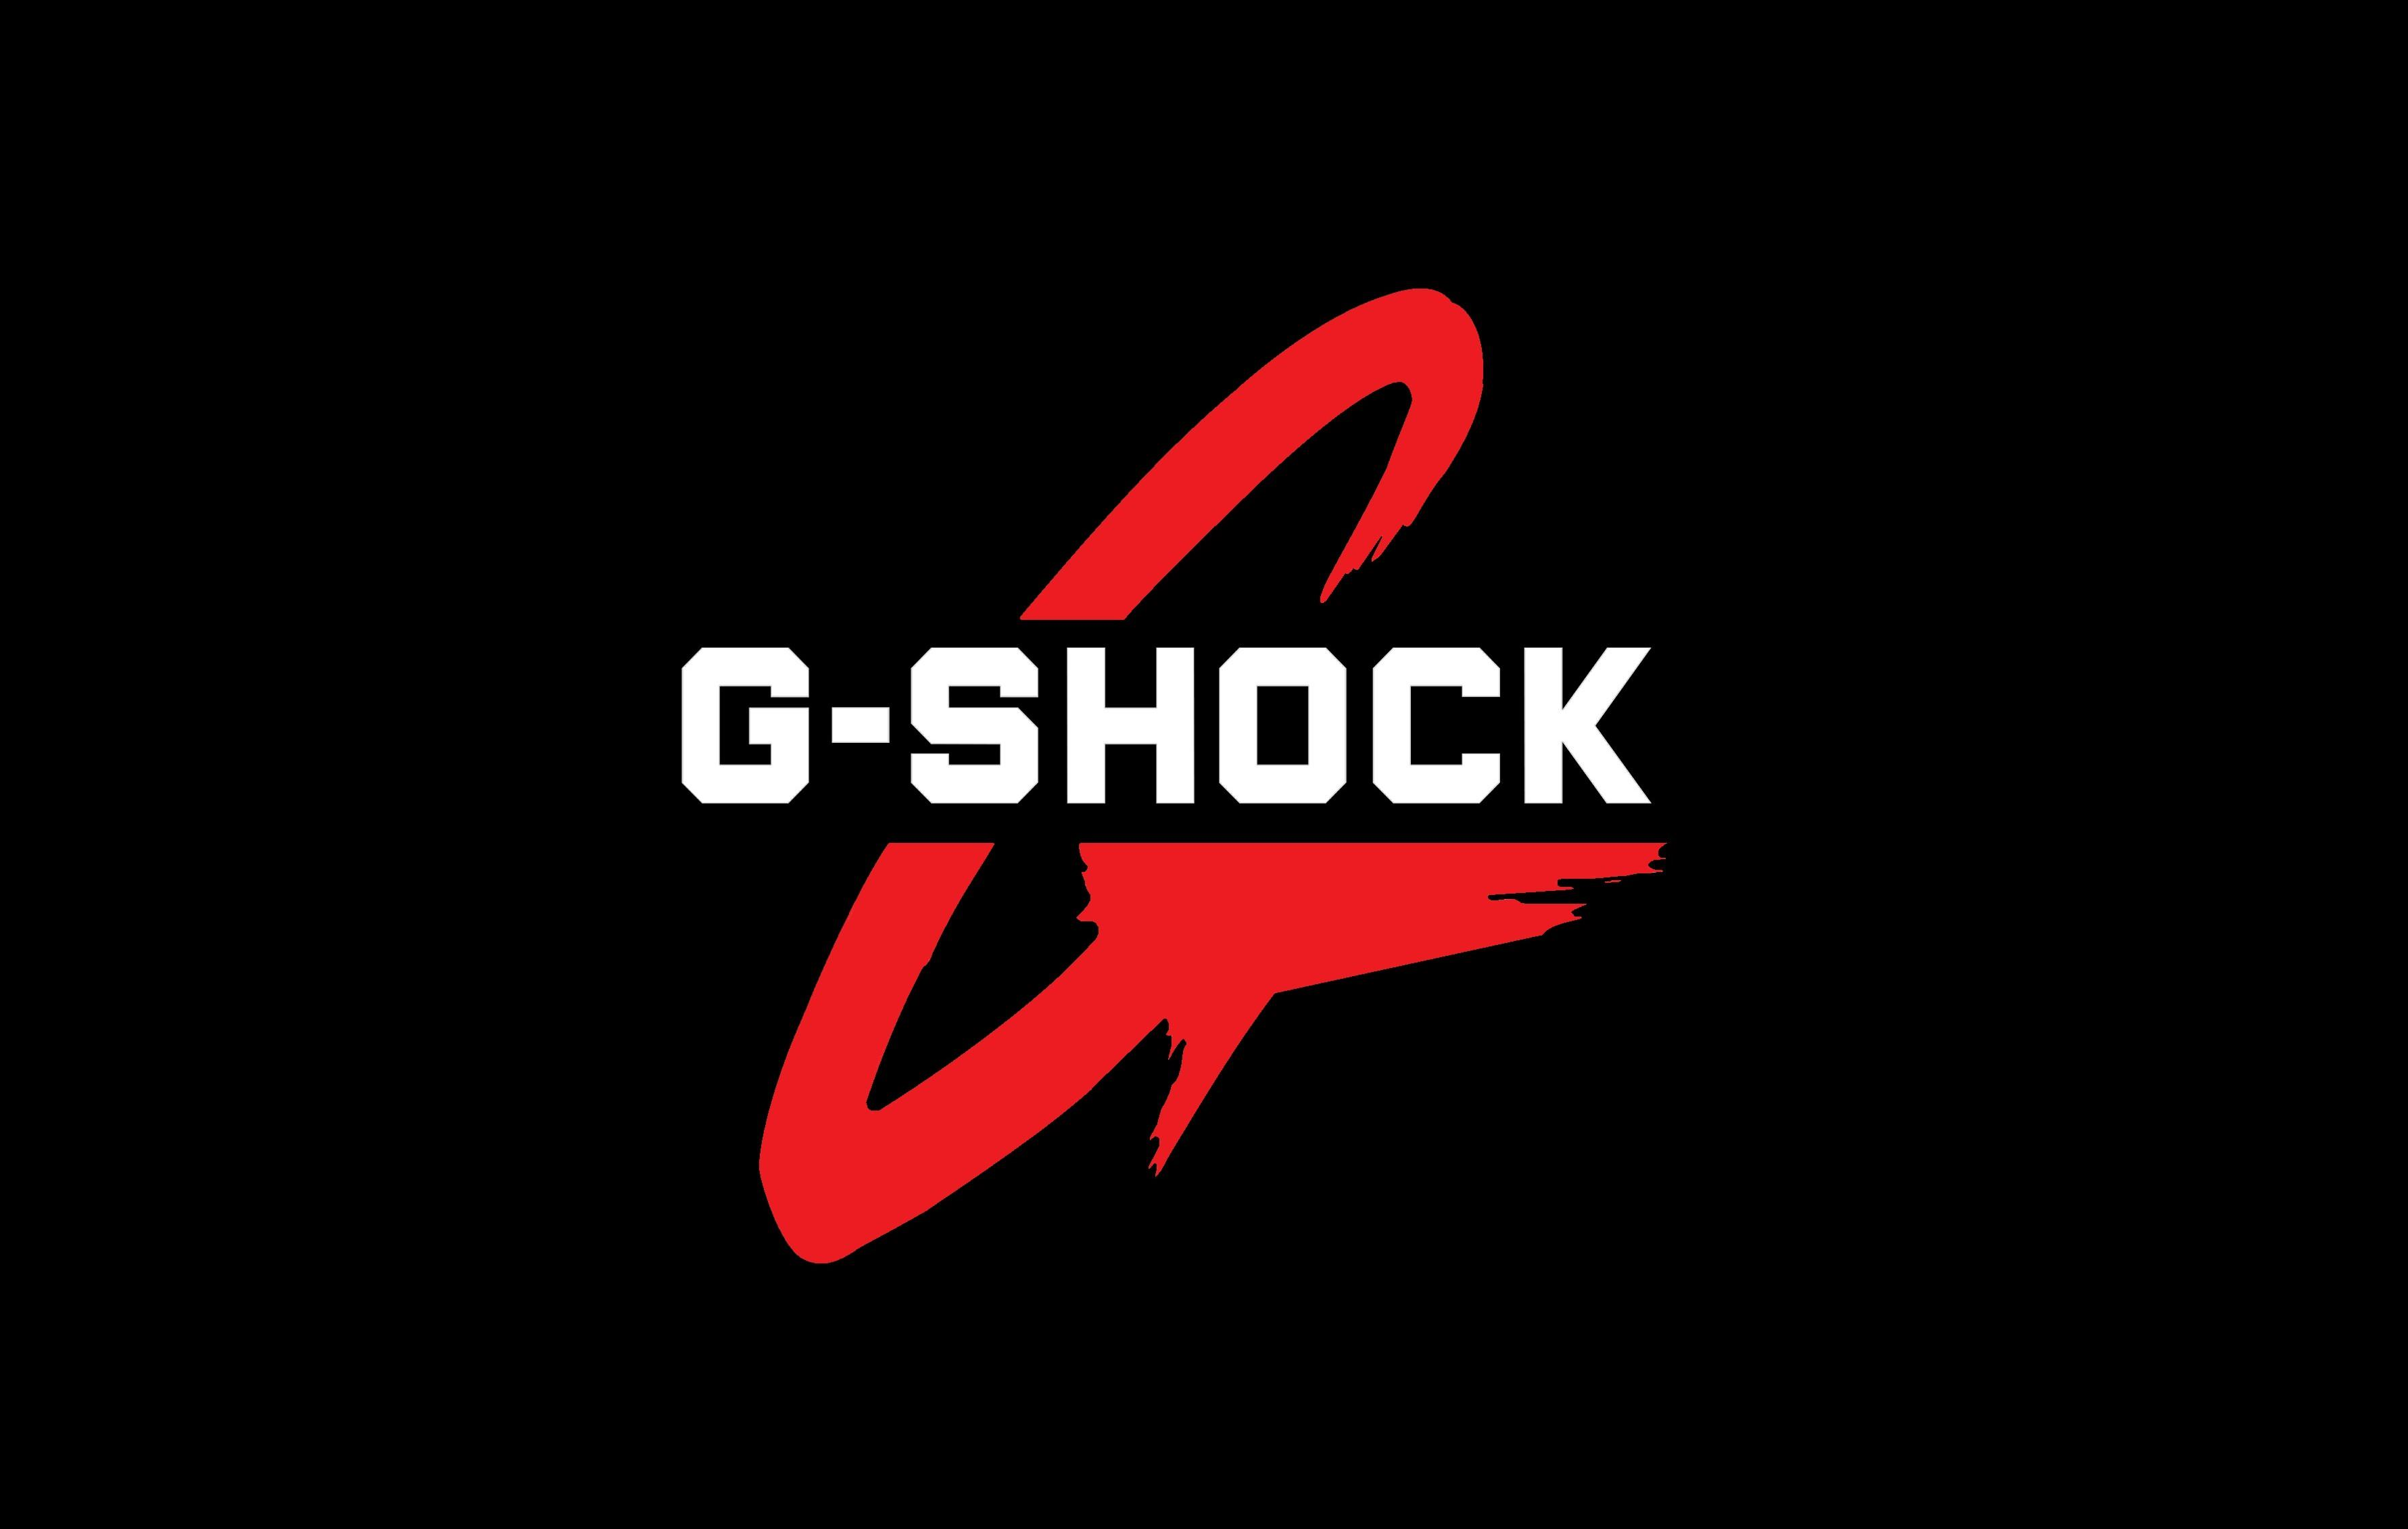 G-SHOCK Wallpaper